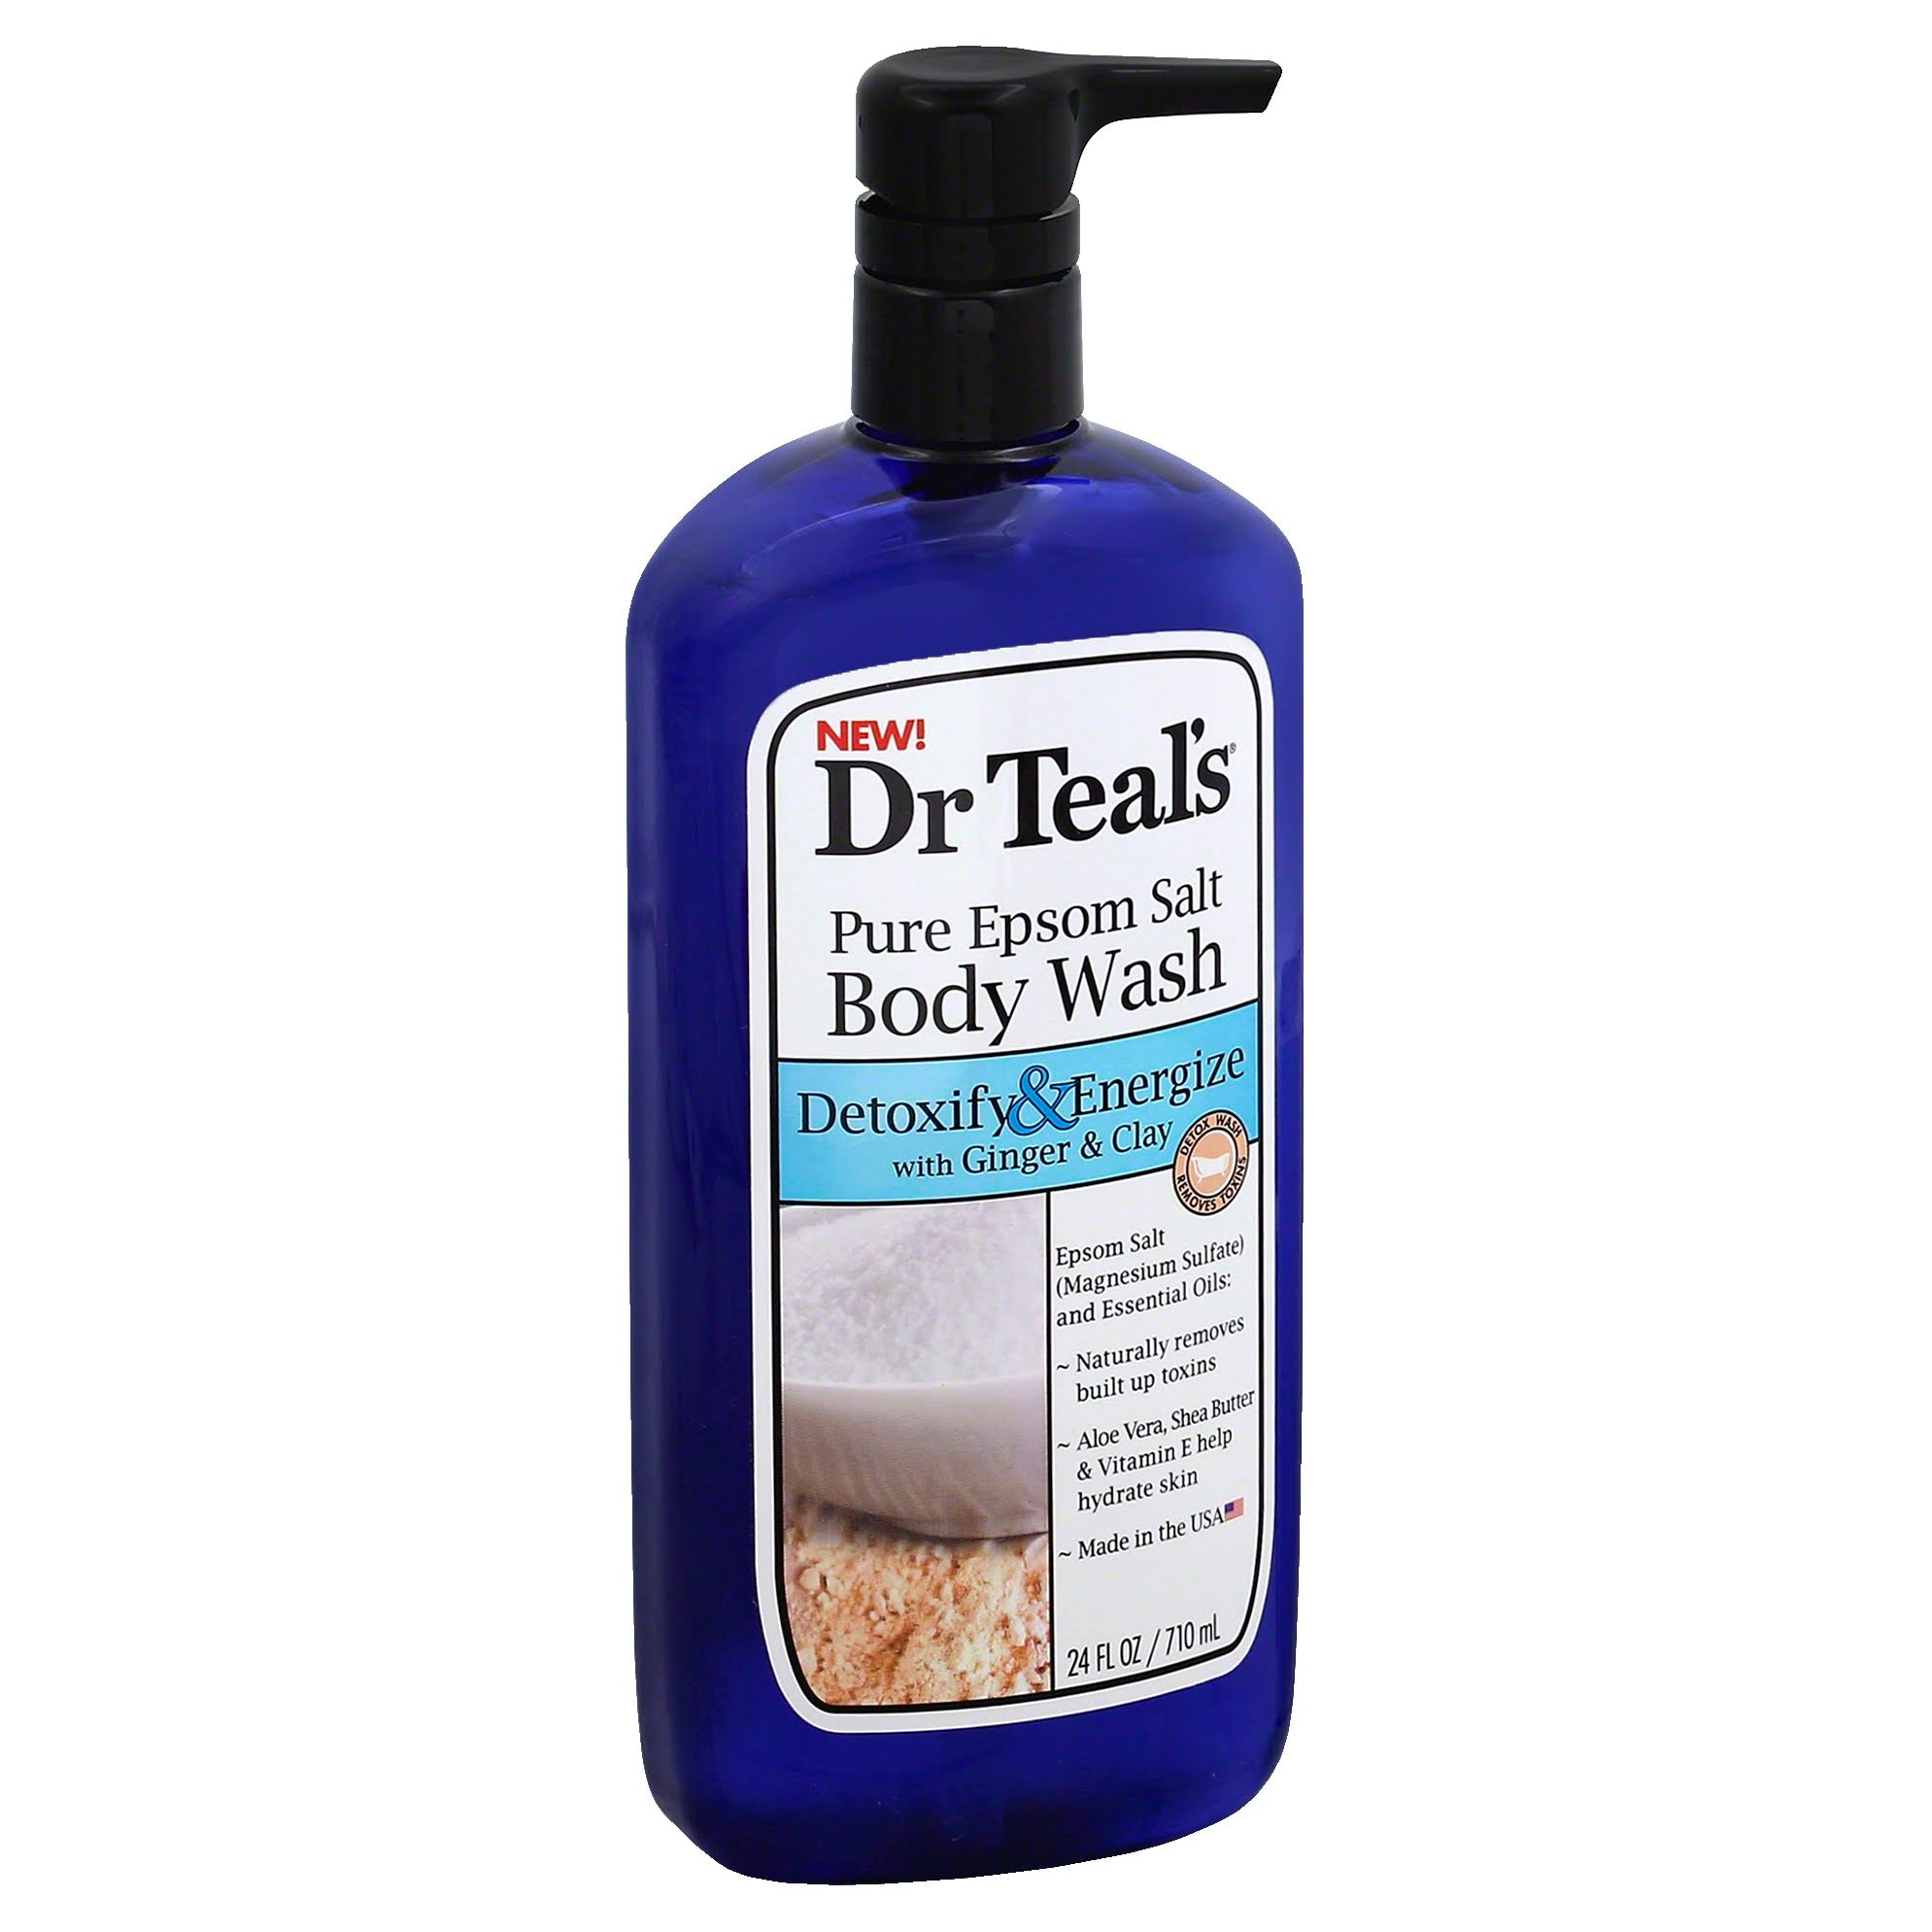 Dr Teal's Detoxify & Energize Body Wash - with Ginger & Clay, 24oz